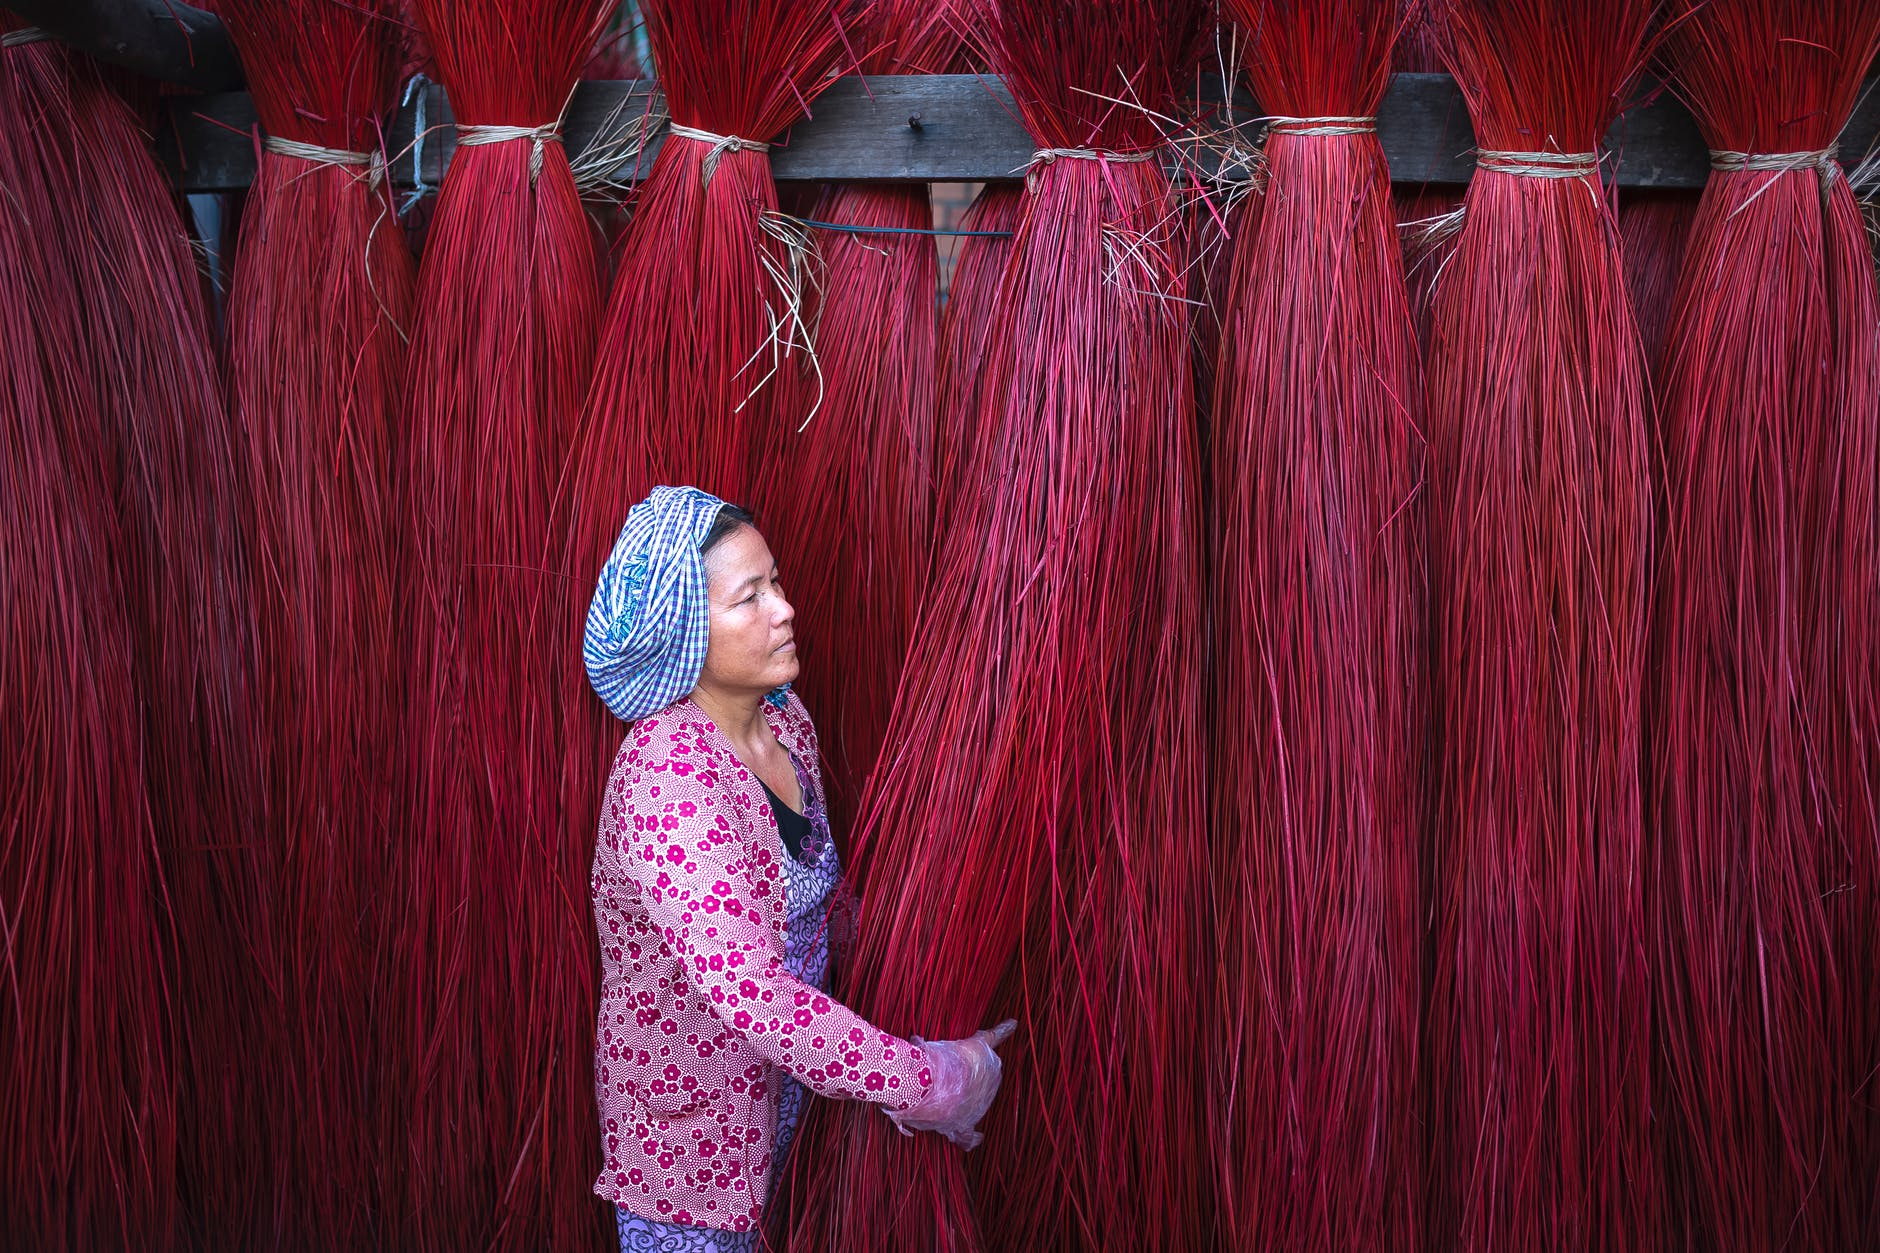 woman holding red ropes